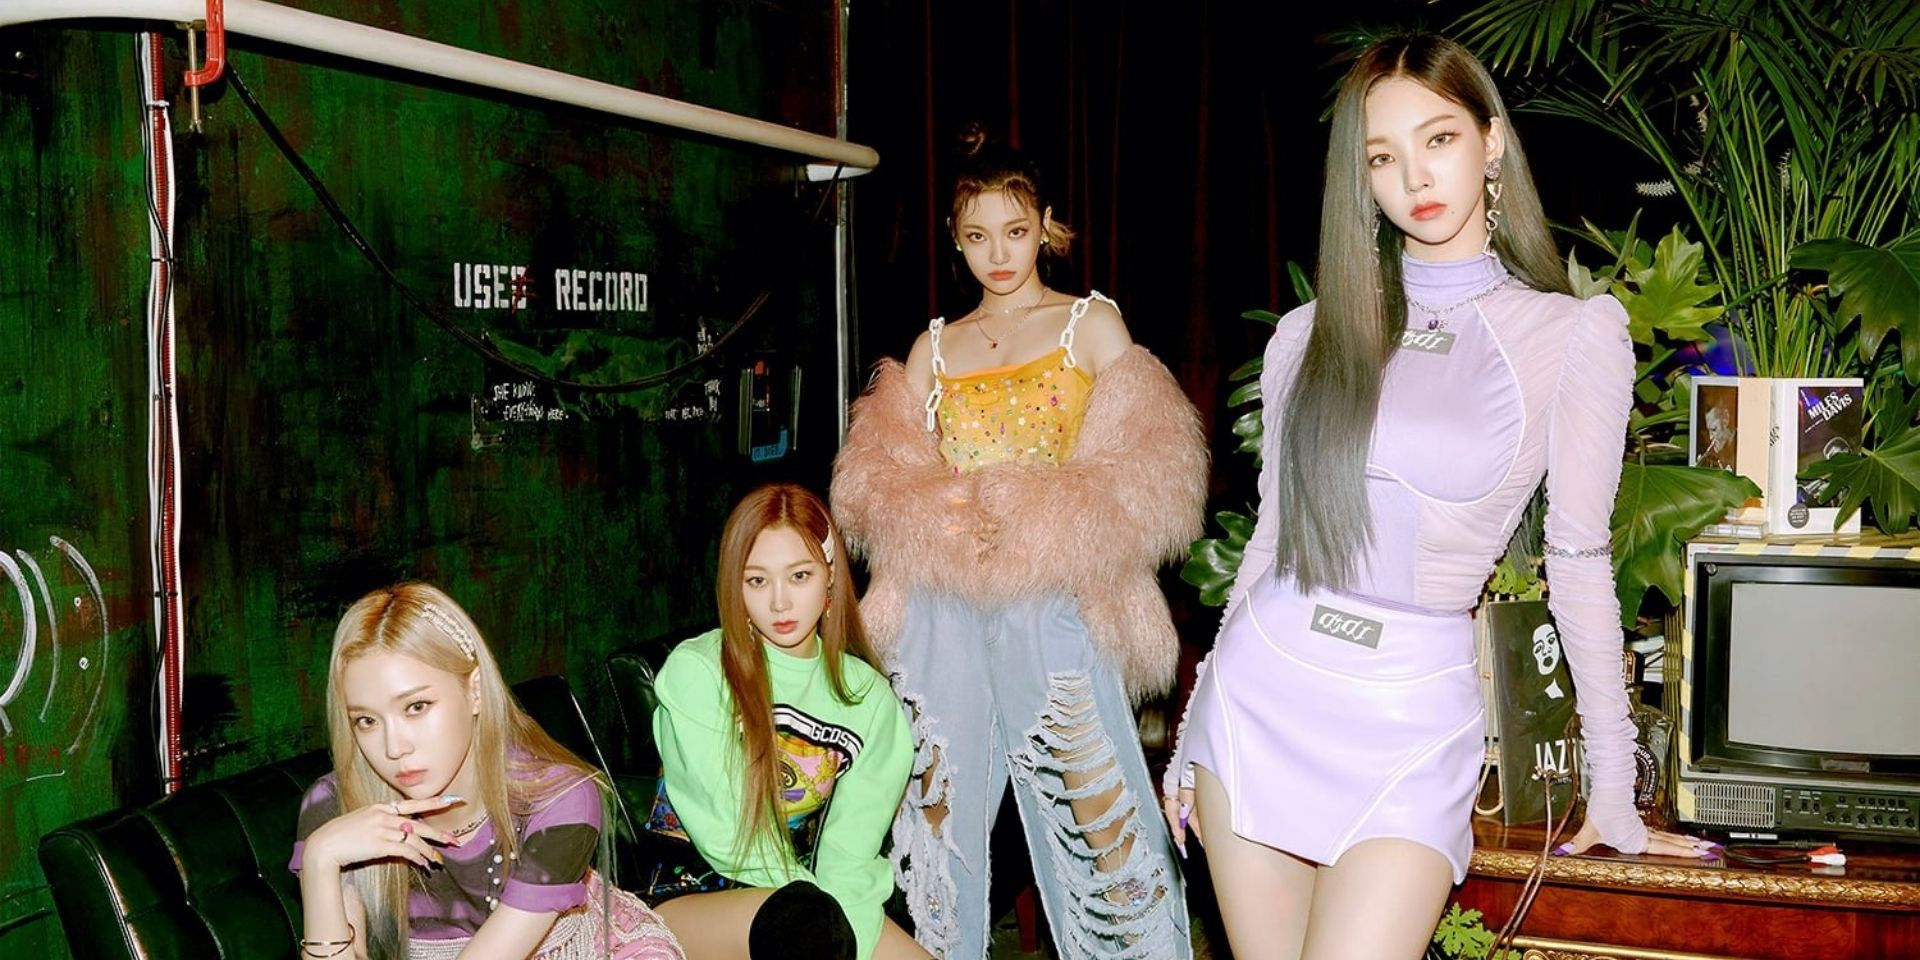 K-pop girl group aespa set to comeback in May with new single 'Next Level'